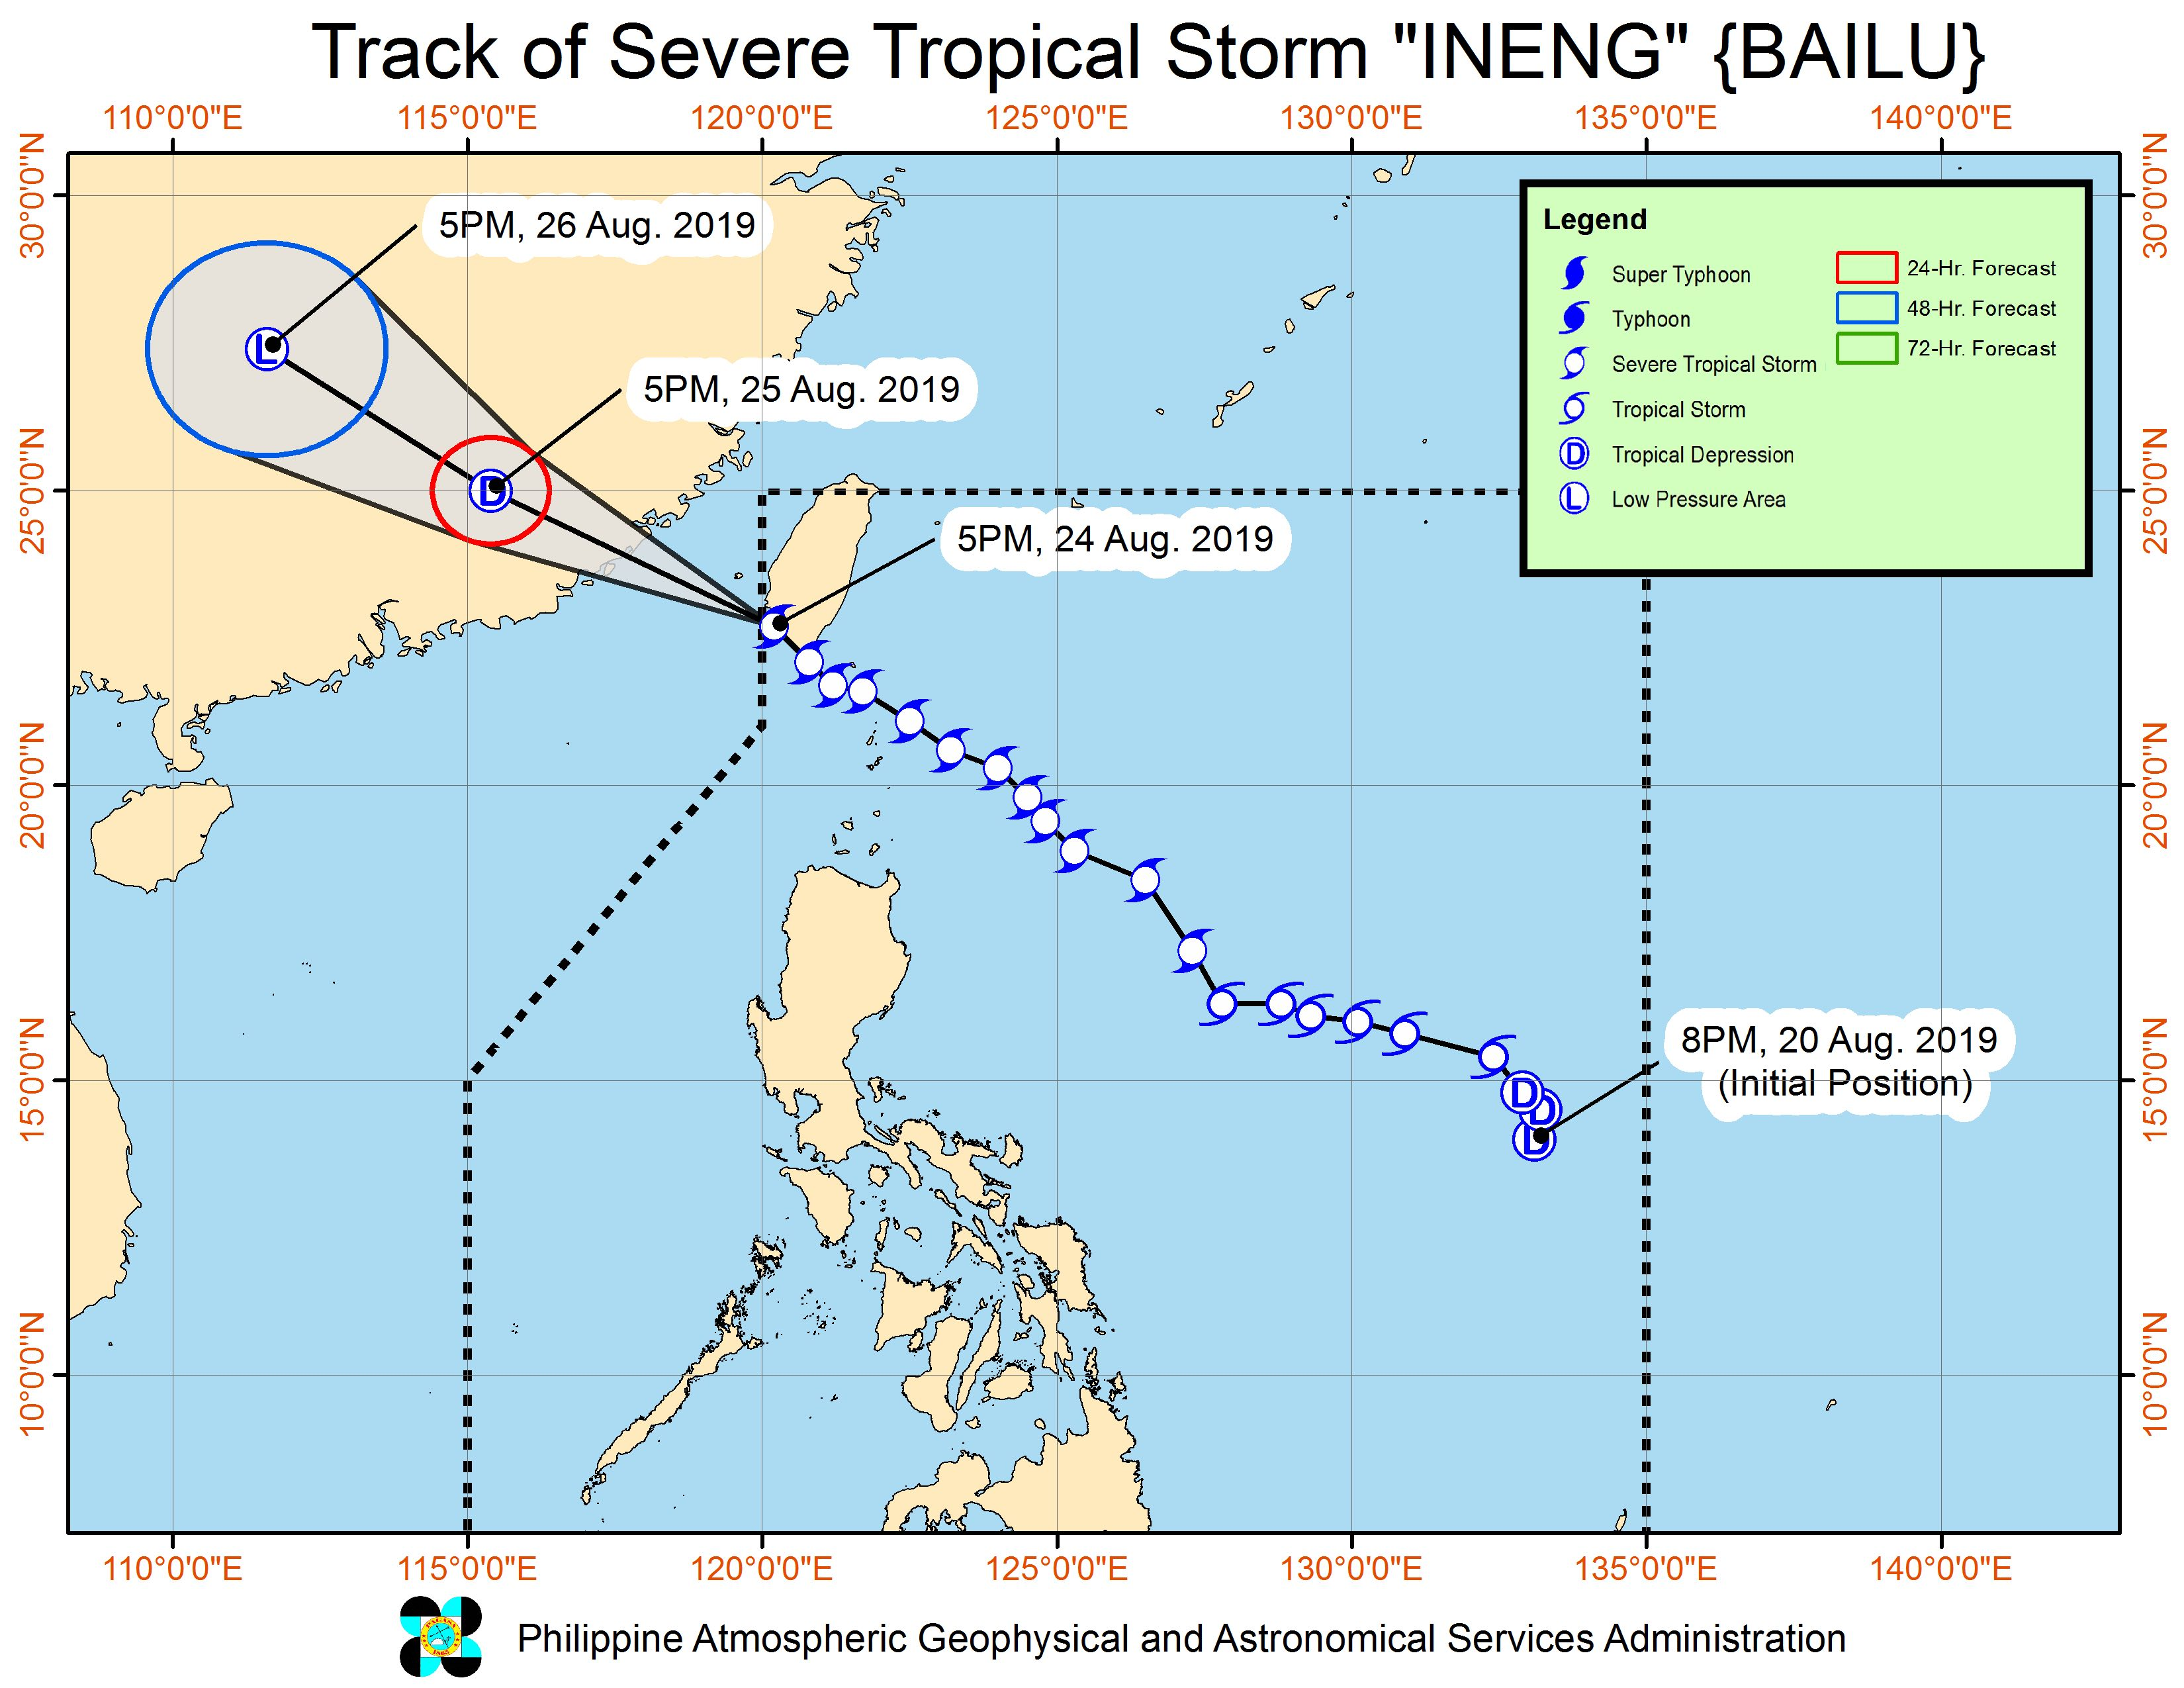 Forecast track of Severe Tropical Storm Ineng (Bailu) as of August 24, 2019, 8 pm. Image from PAGASA